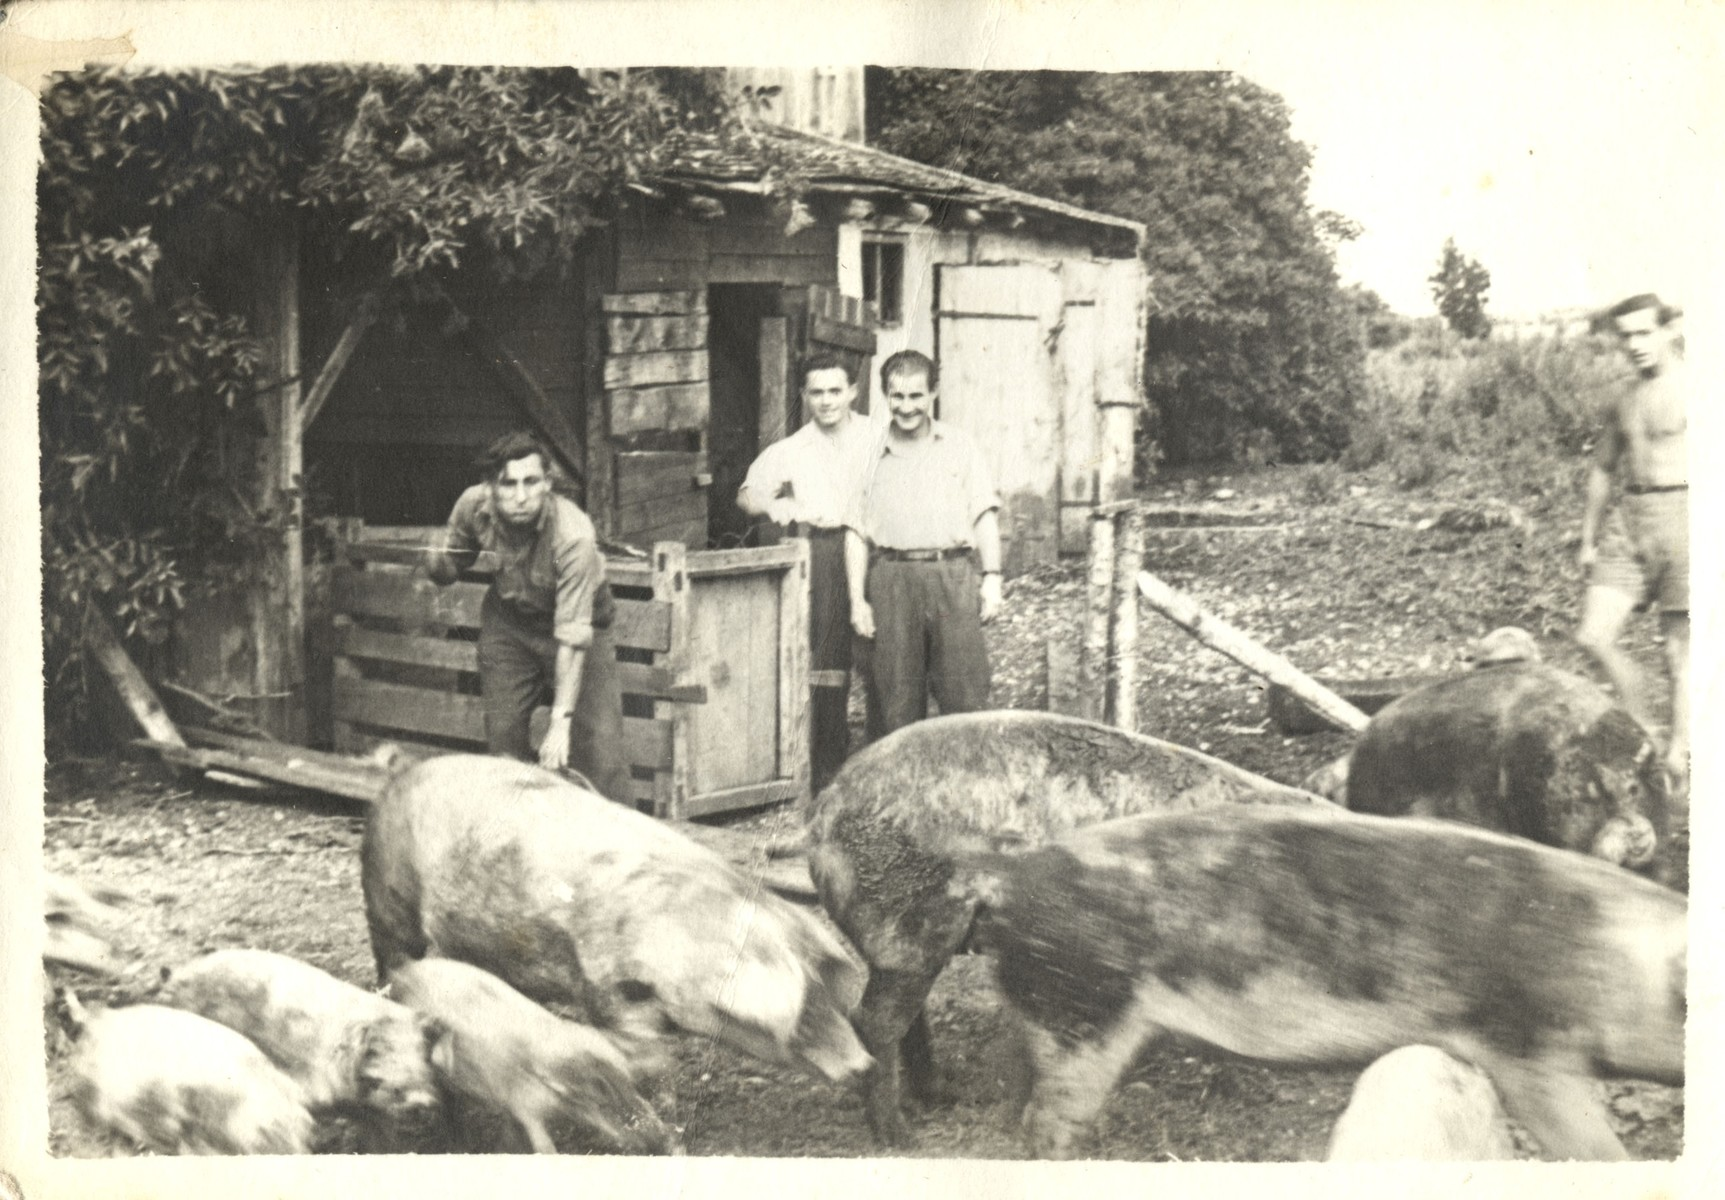 Jewish youth feed pigs on a kibbutz hachshara farm in Germany in preparation for their immigration to Palestine.